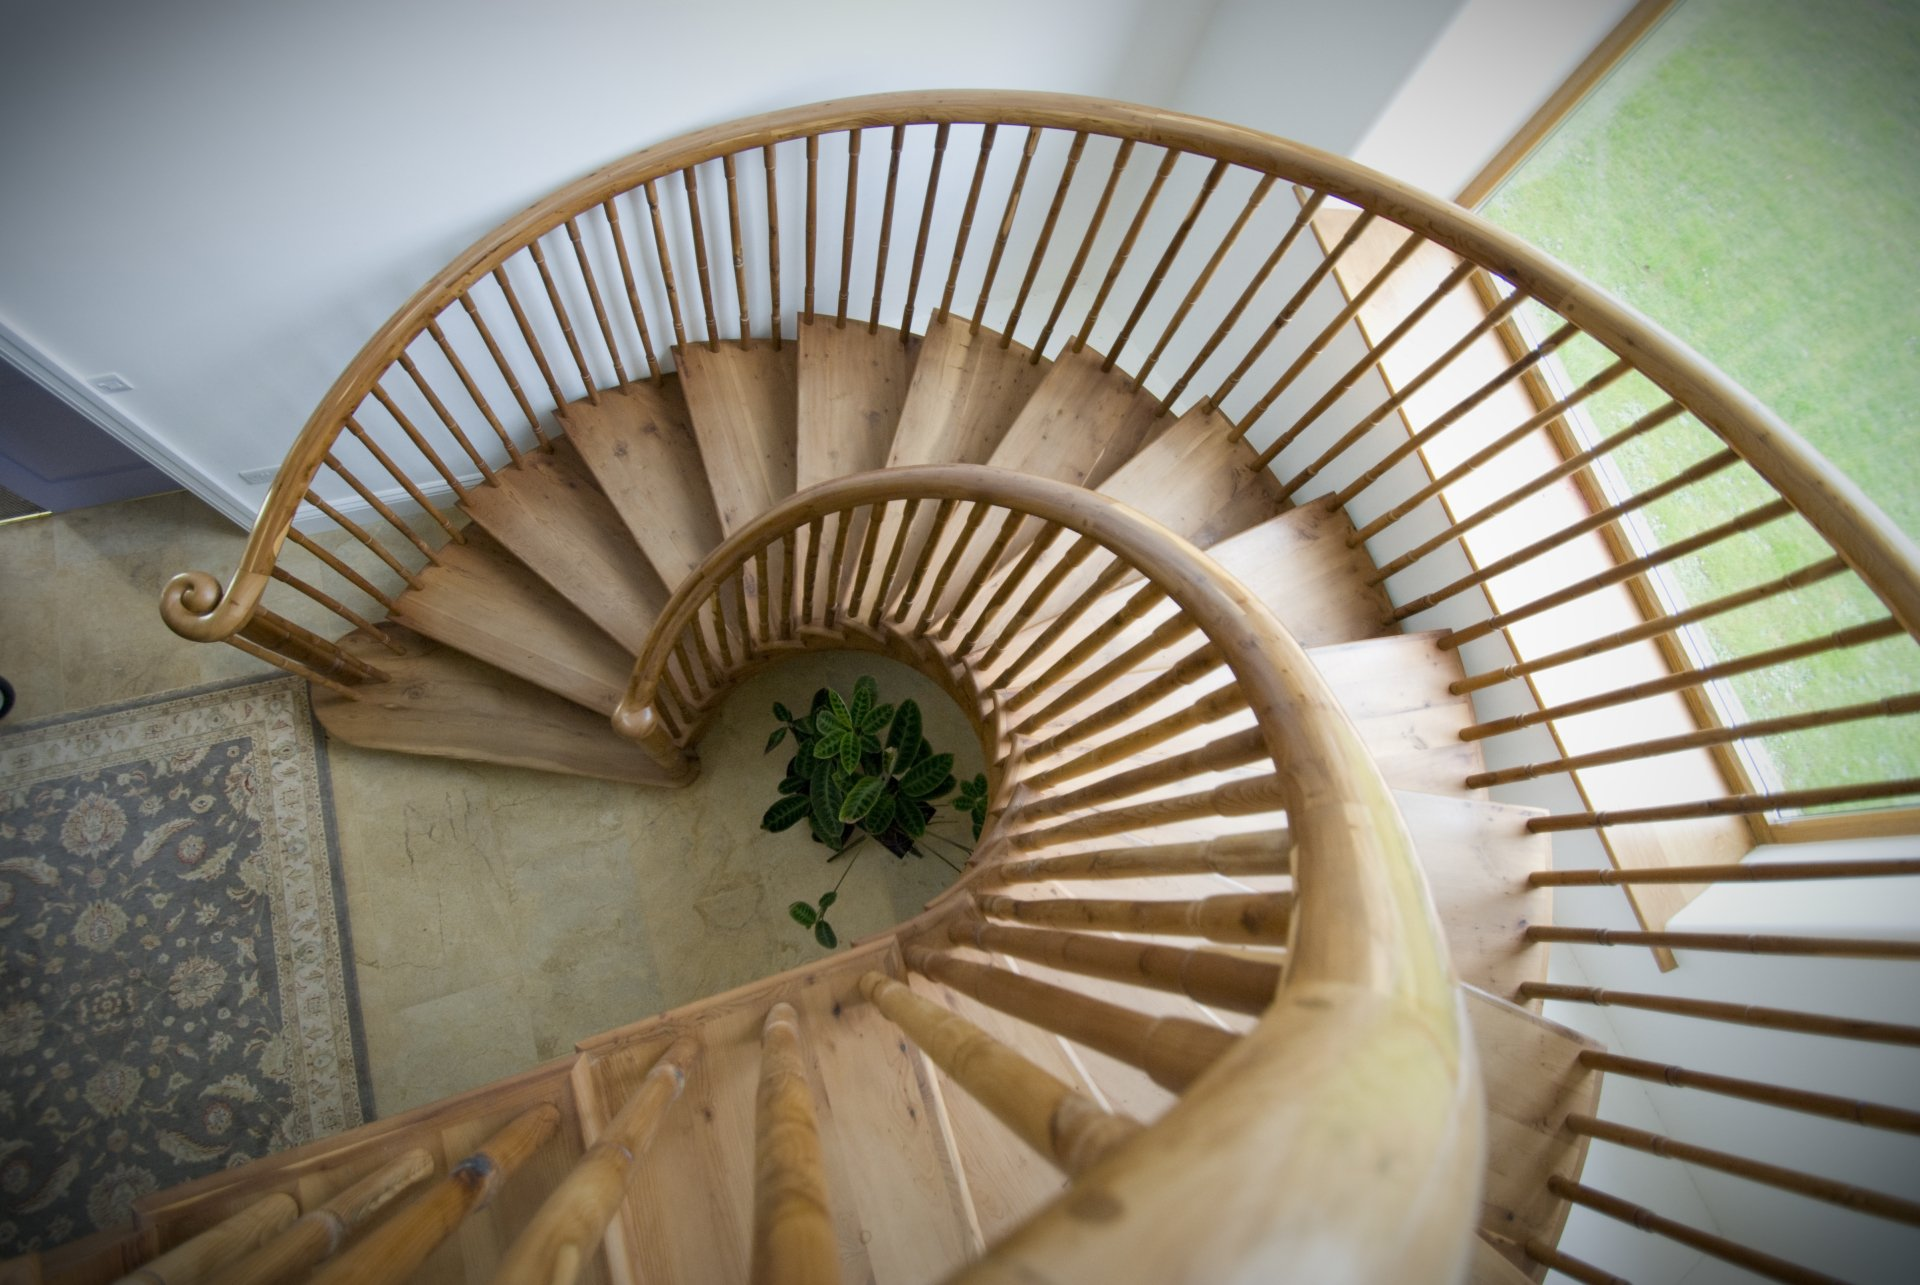 Bespoke Staircases designed, made and fitted by our somerset based team